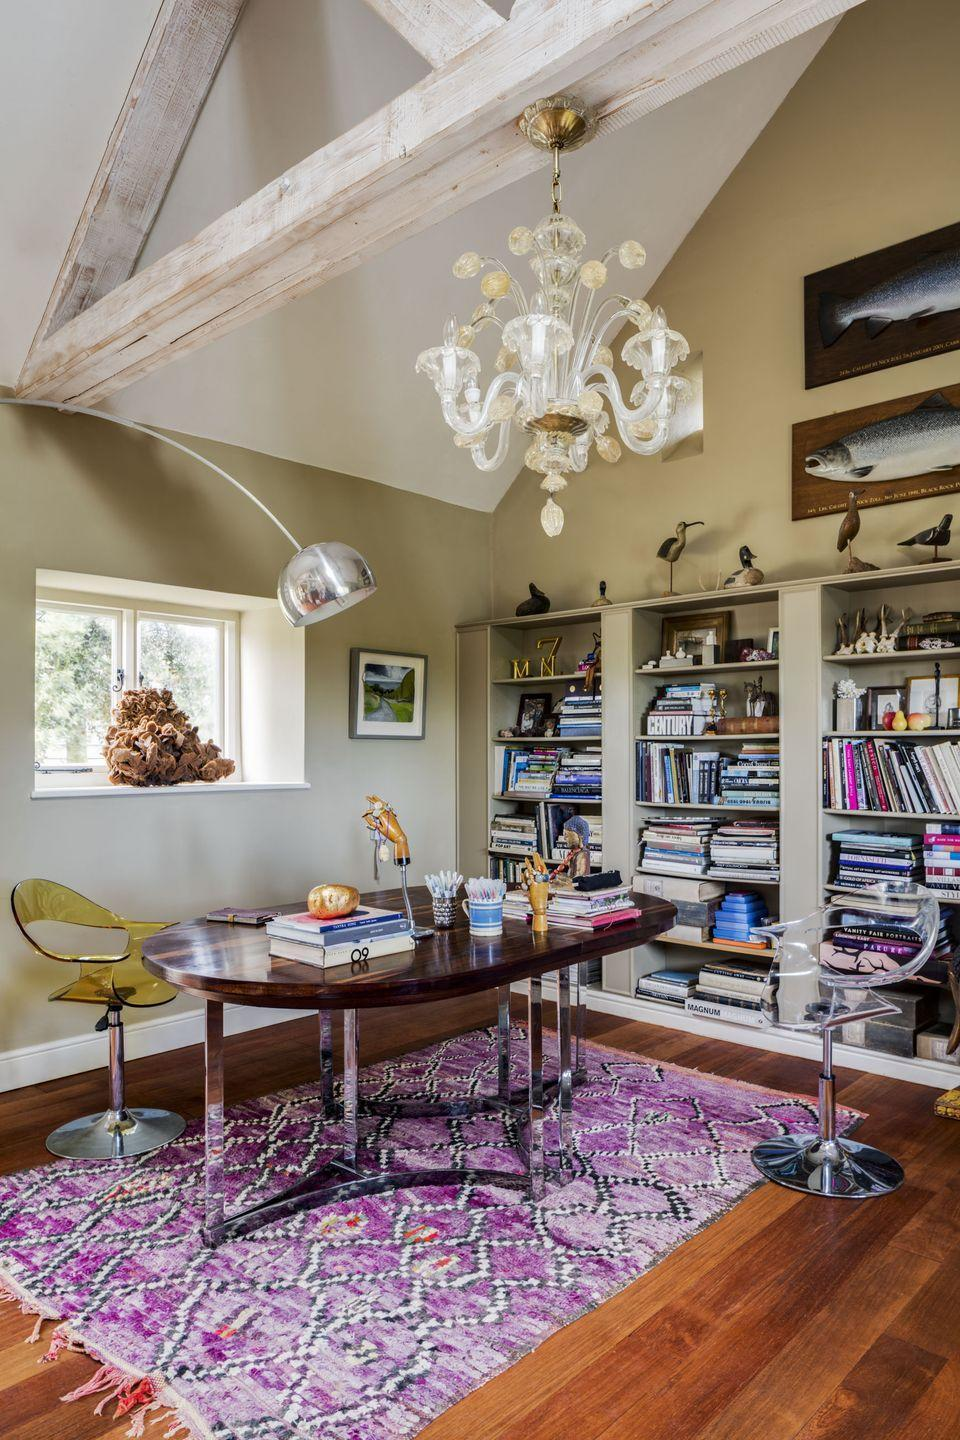 """<p>""""Since lockdown, I have spent most days working from here, surrounded by my favourite books and pieces collected over the years. The 70s Richard Young table I bought from <a href=""""https://www.lescouillesduchien.com/"""" rel=""""nofollow noopener"""" target=""""_blank"""" data-ylk=""""slk:Les Couilles du Chien"""" class=""""link rapid-noclick-resp"""">Les Couilles du Chien</a> was designed as a dining table but makes the perfect desk so I can spread out my reference books, pens, and sketchbooks. This was the site of the old forge, and before we restored it, a giant pair of bellows stood here.""""</p>"""